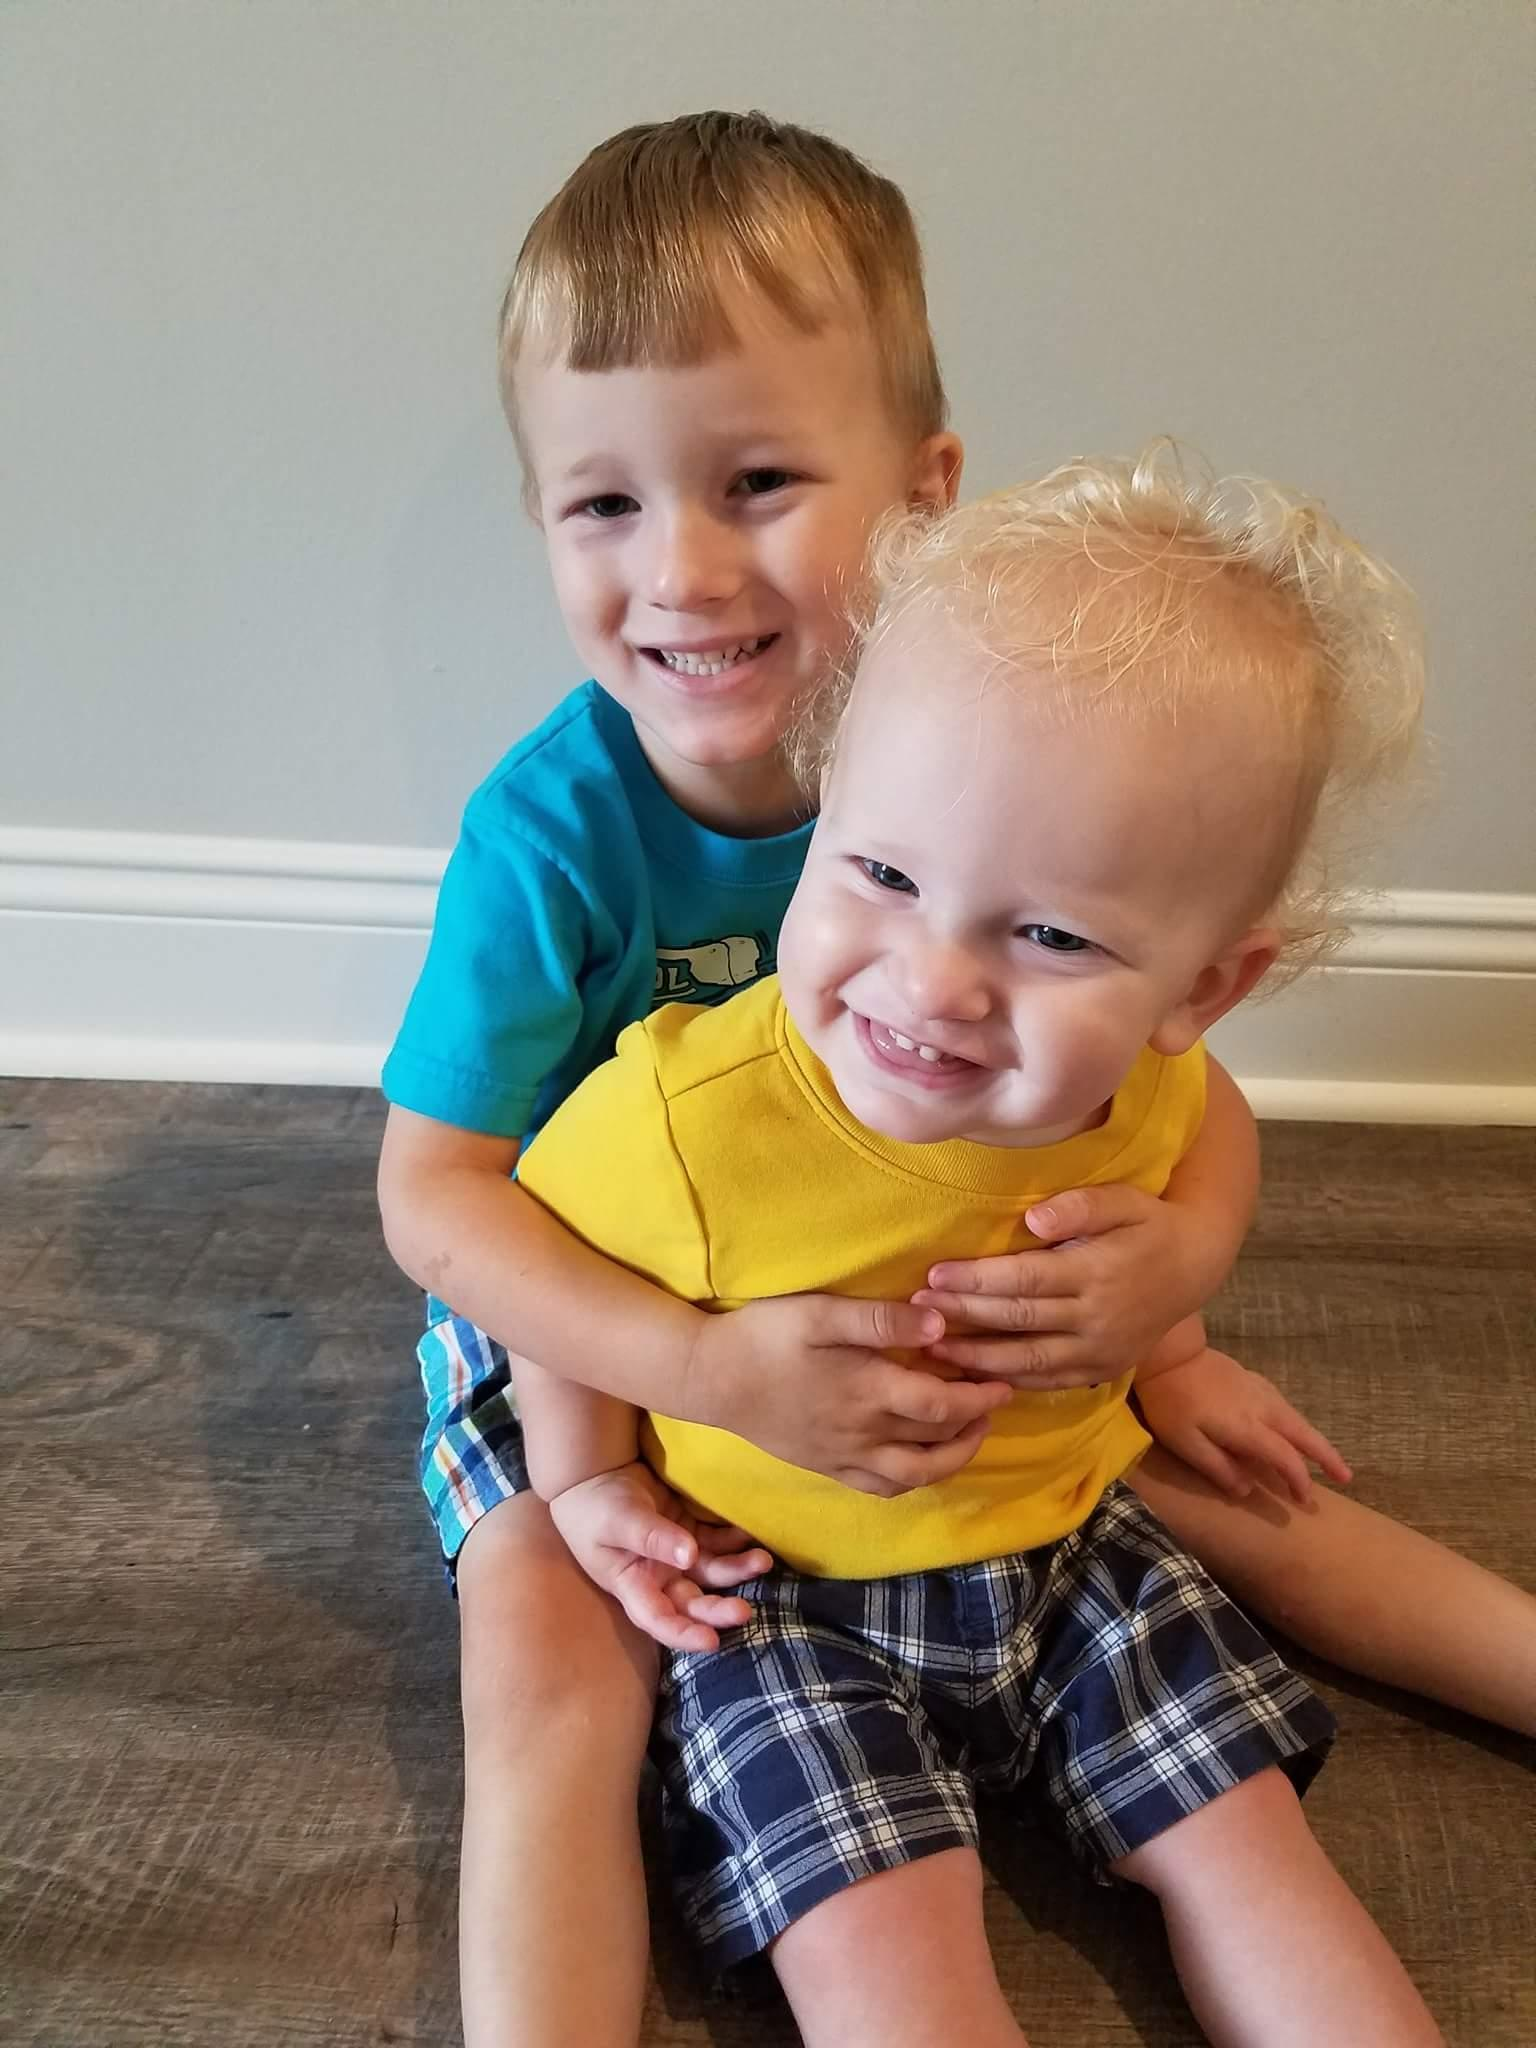 My two grandsons hugging each other